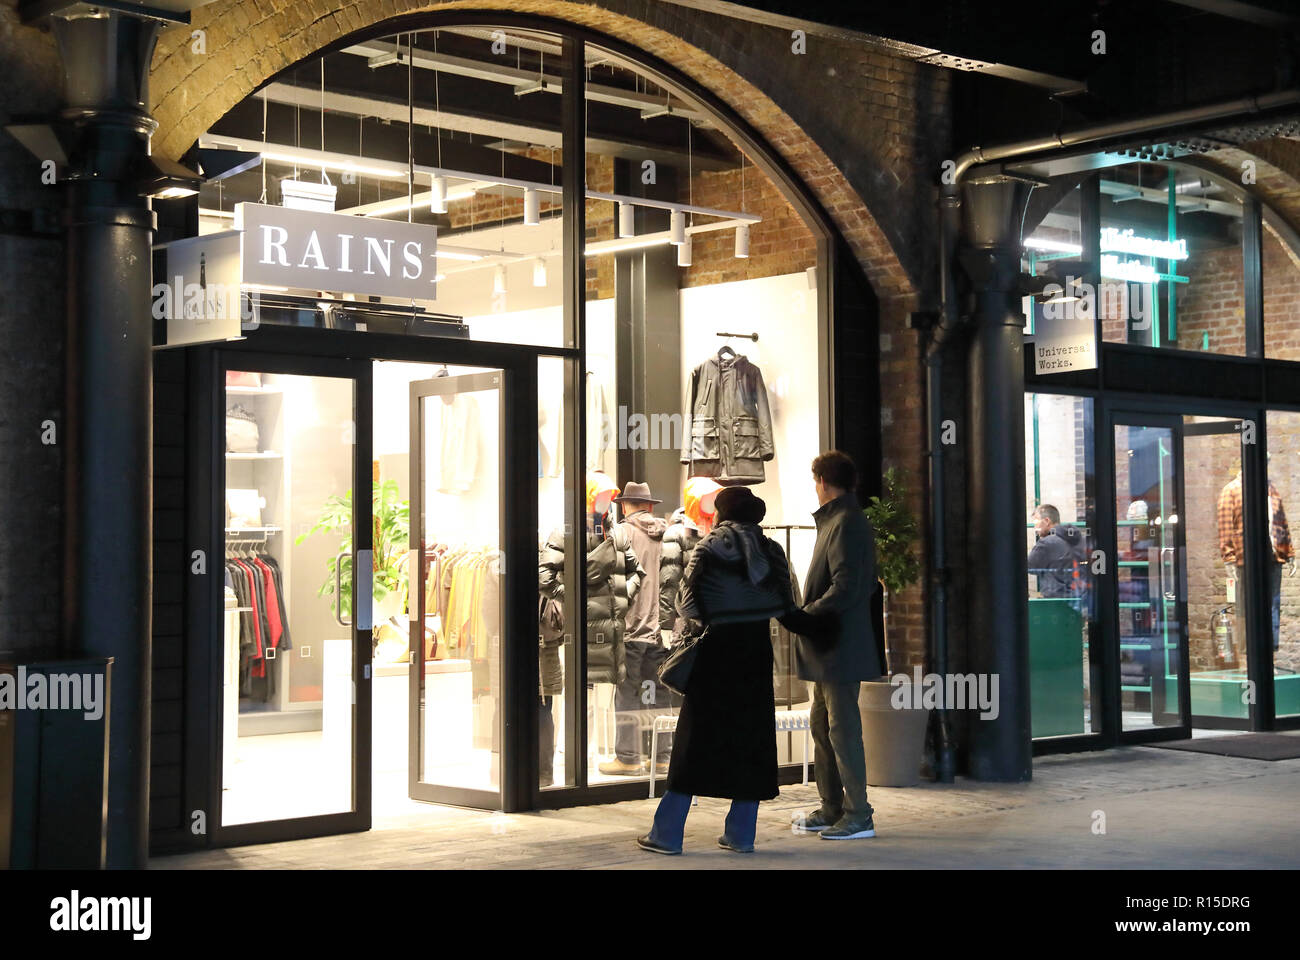 Rains fashion store on yard level at Coal Drops Yard, the new canalside shopping development at Kings Cross, London, UK - Stock Image